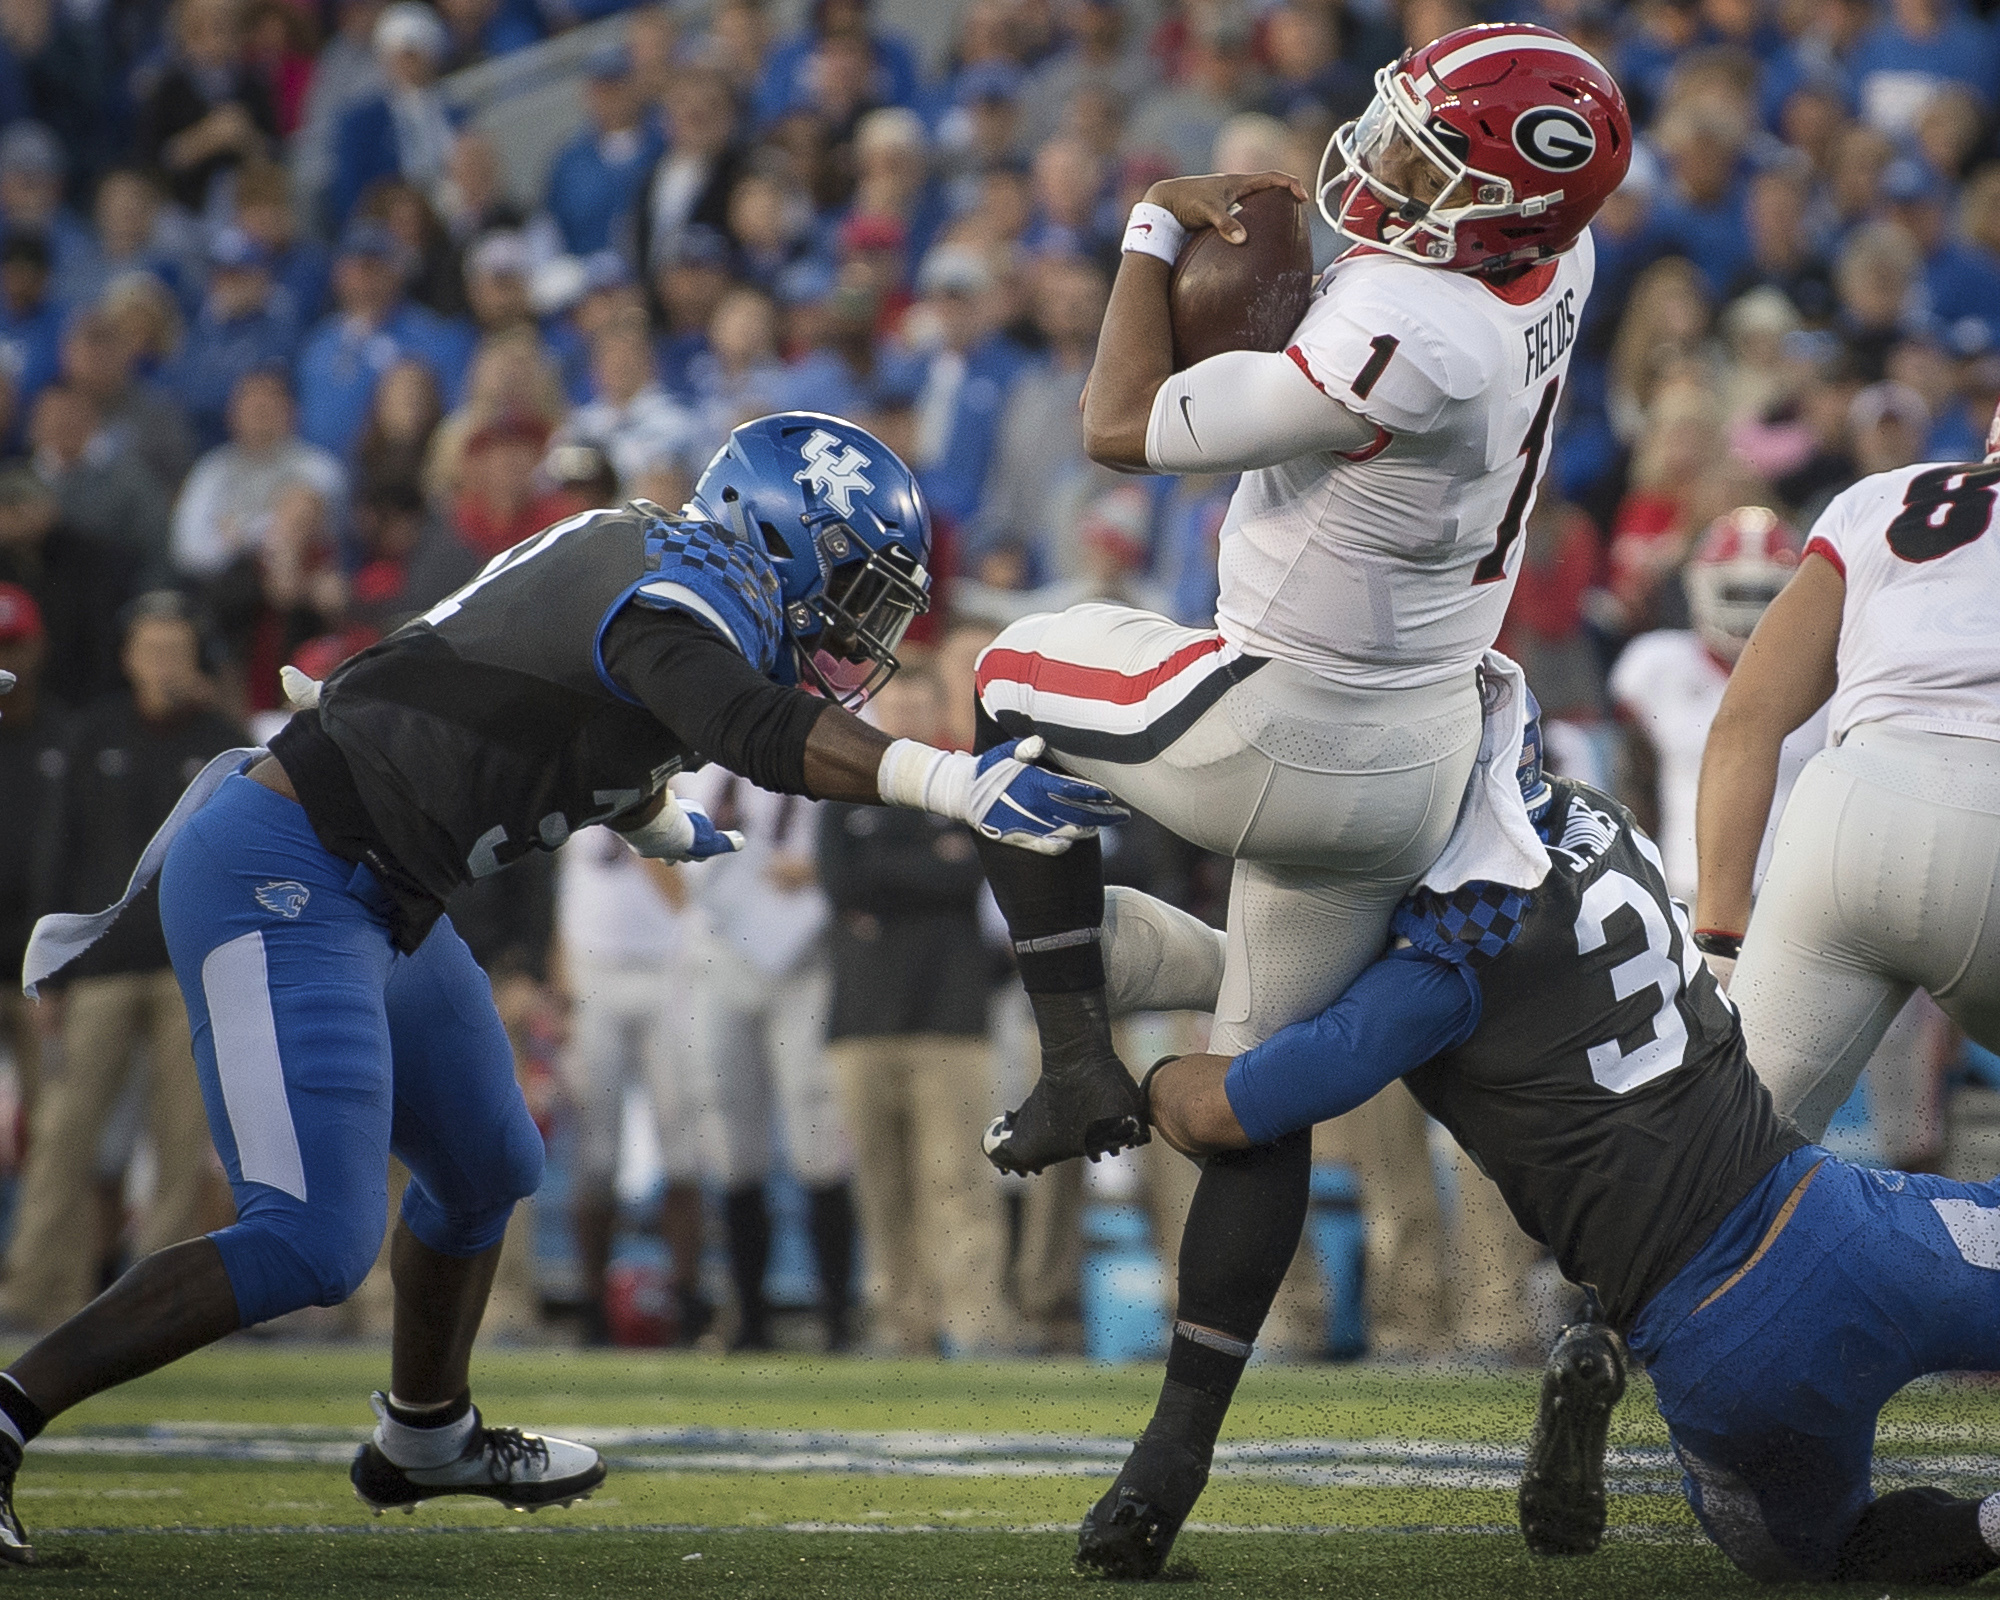 Kentucky needs to replace 8 starters off dominant defense